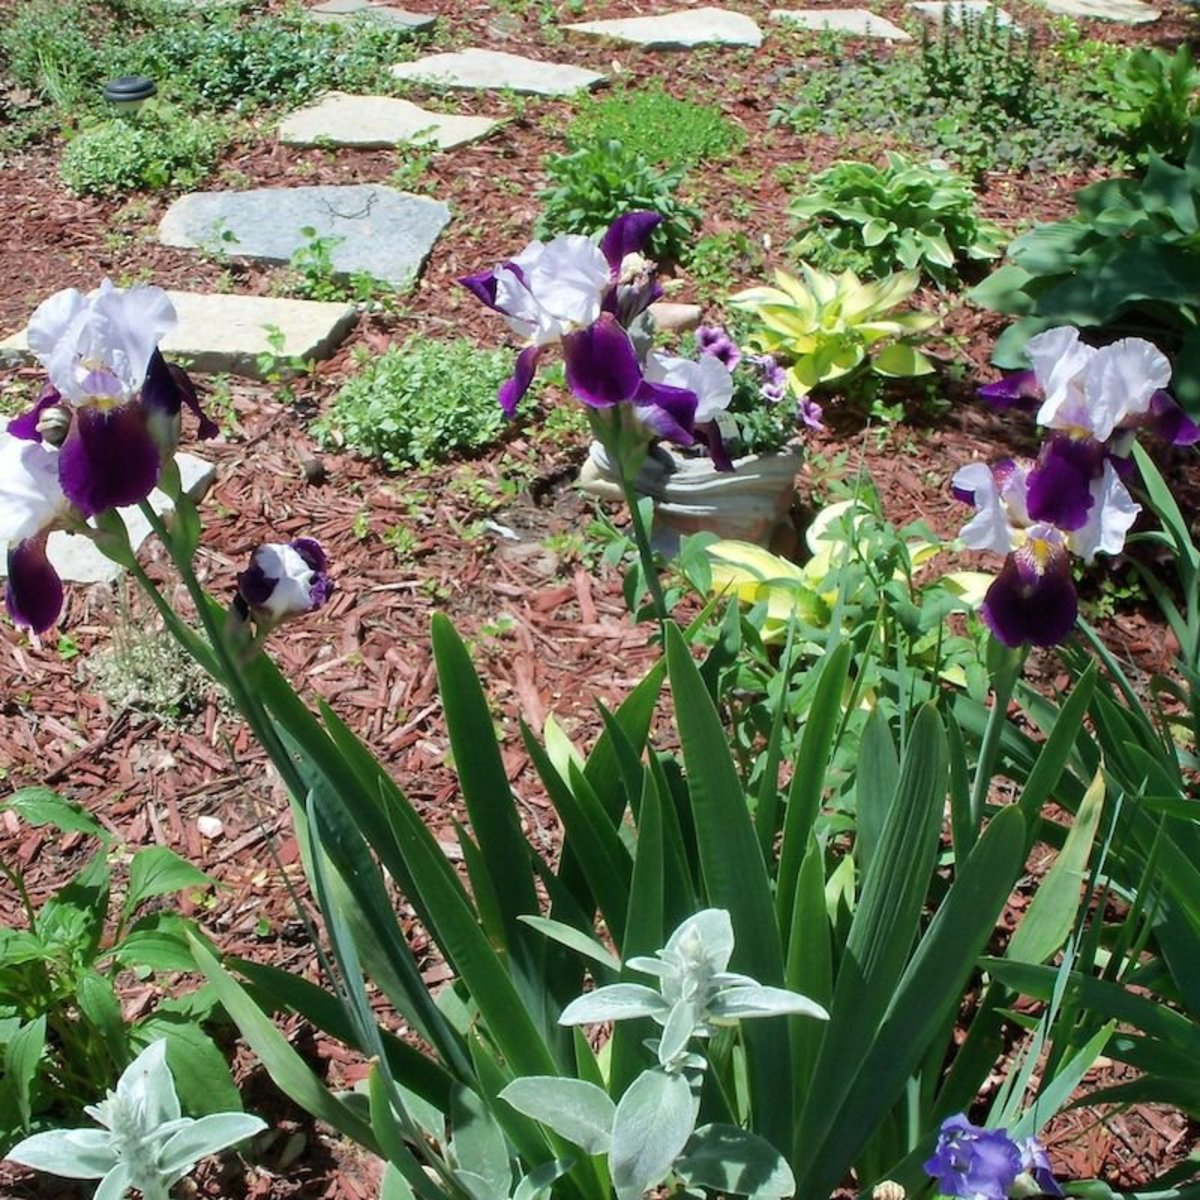 These gorgeous purple irises were one of the first blooms of this spring